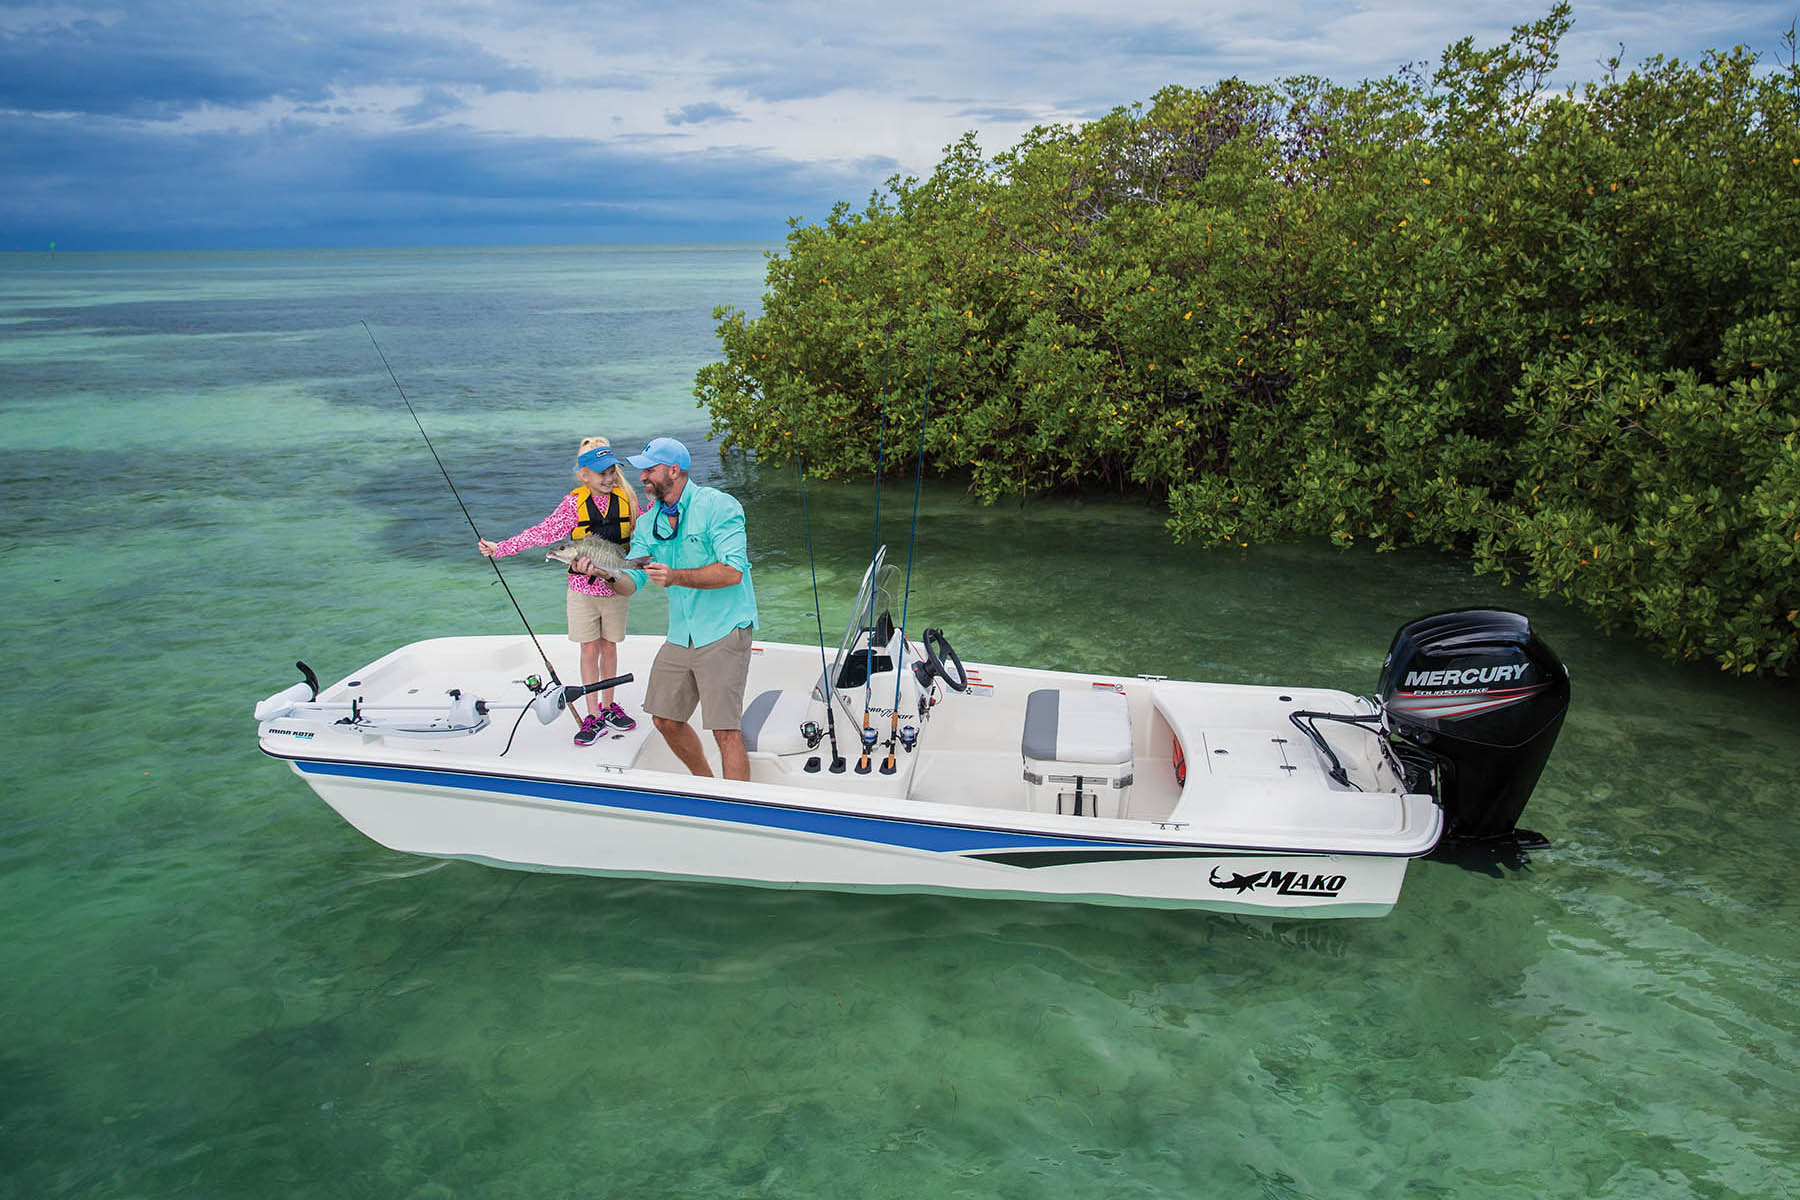 Best New Fishing Boats Under 25K In 2021: Affordable Fishability thumbnail